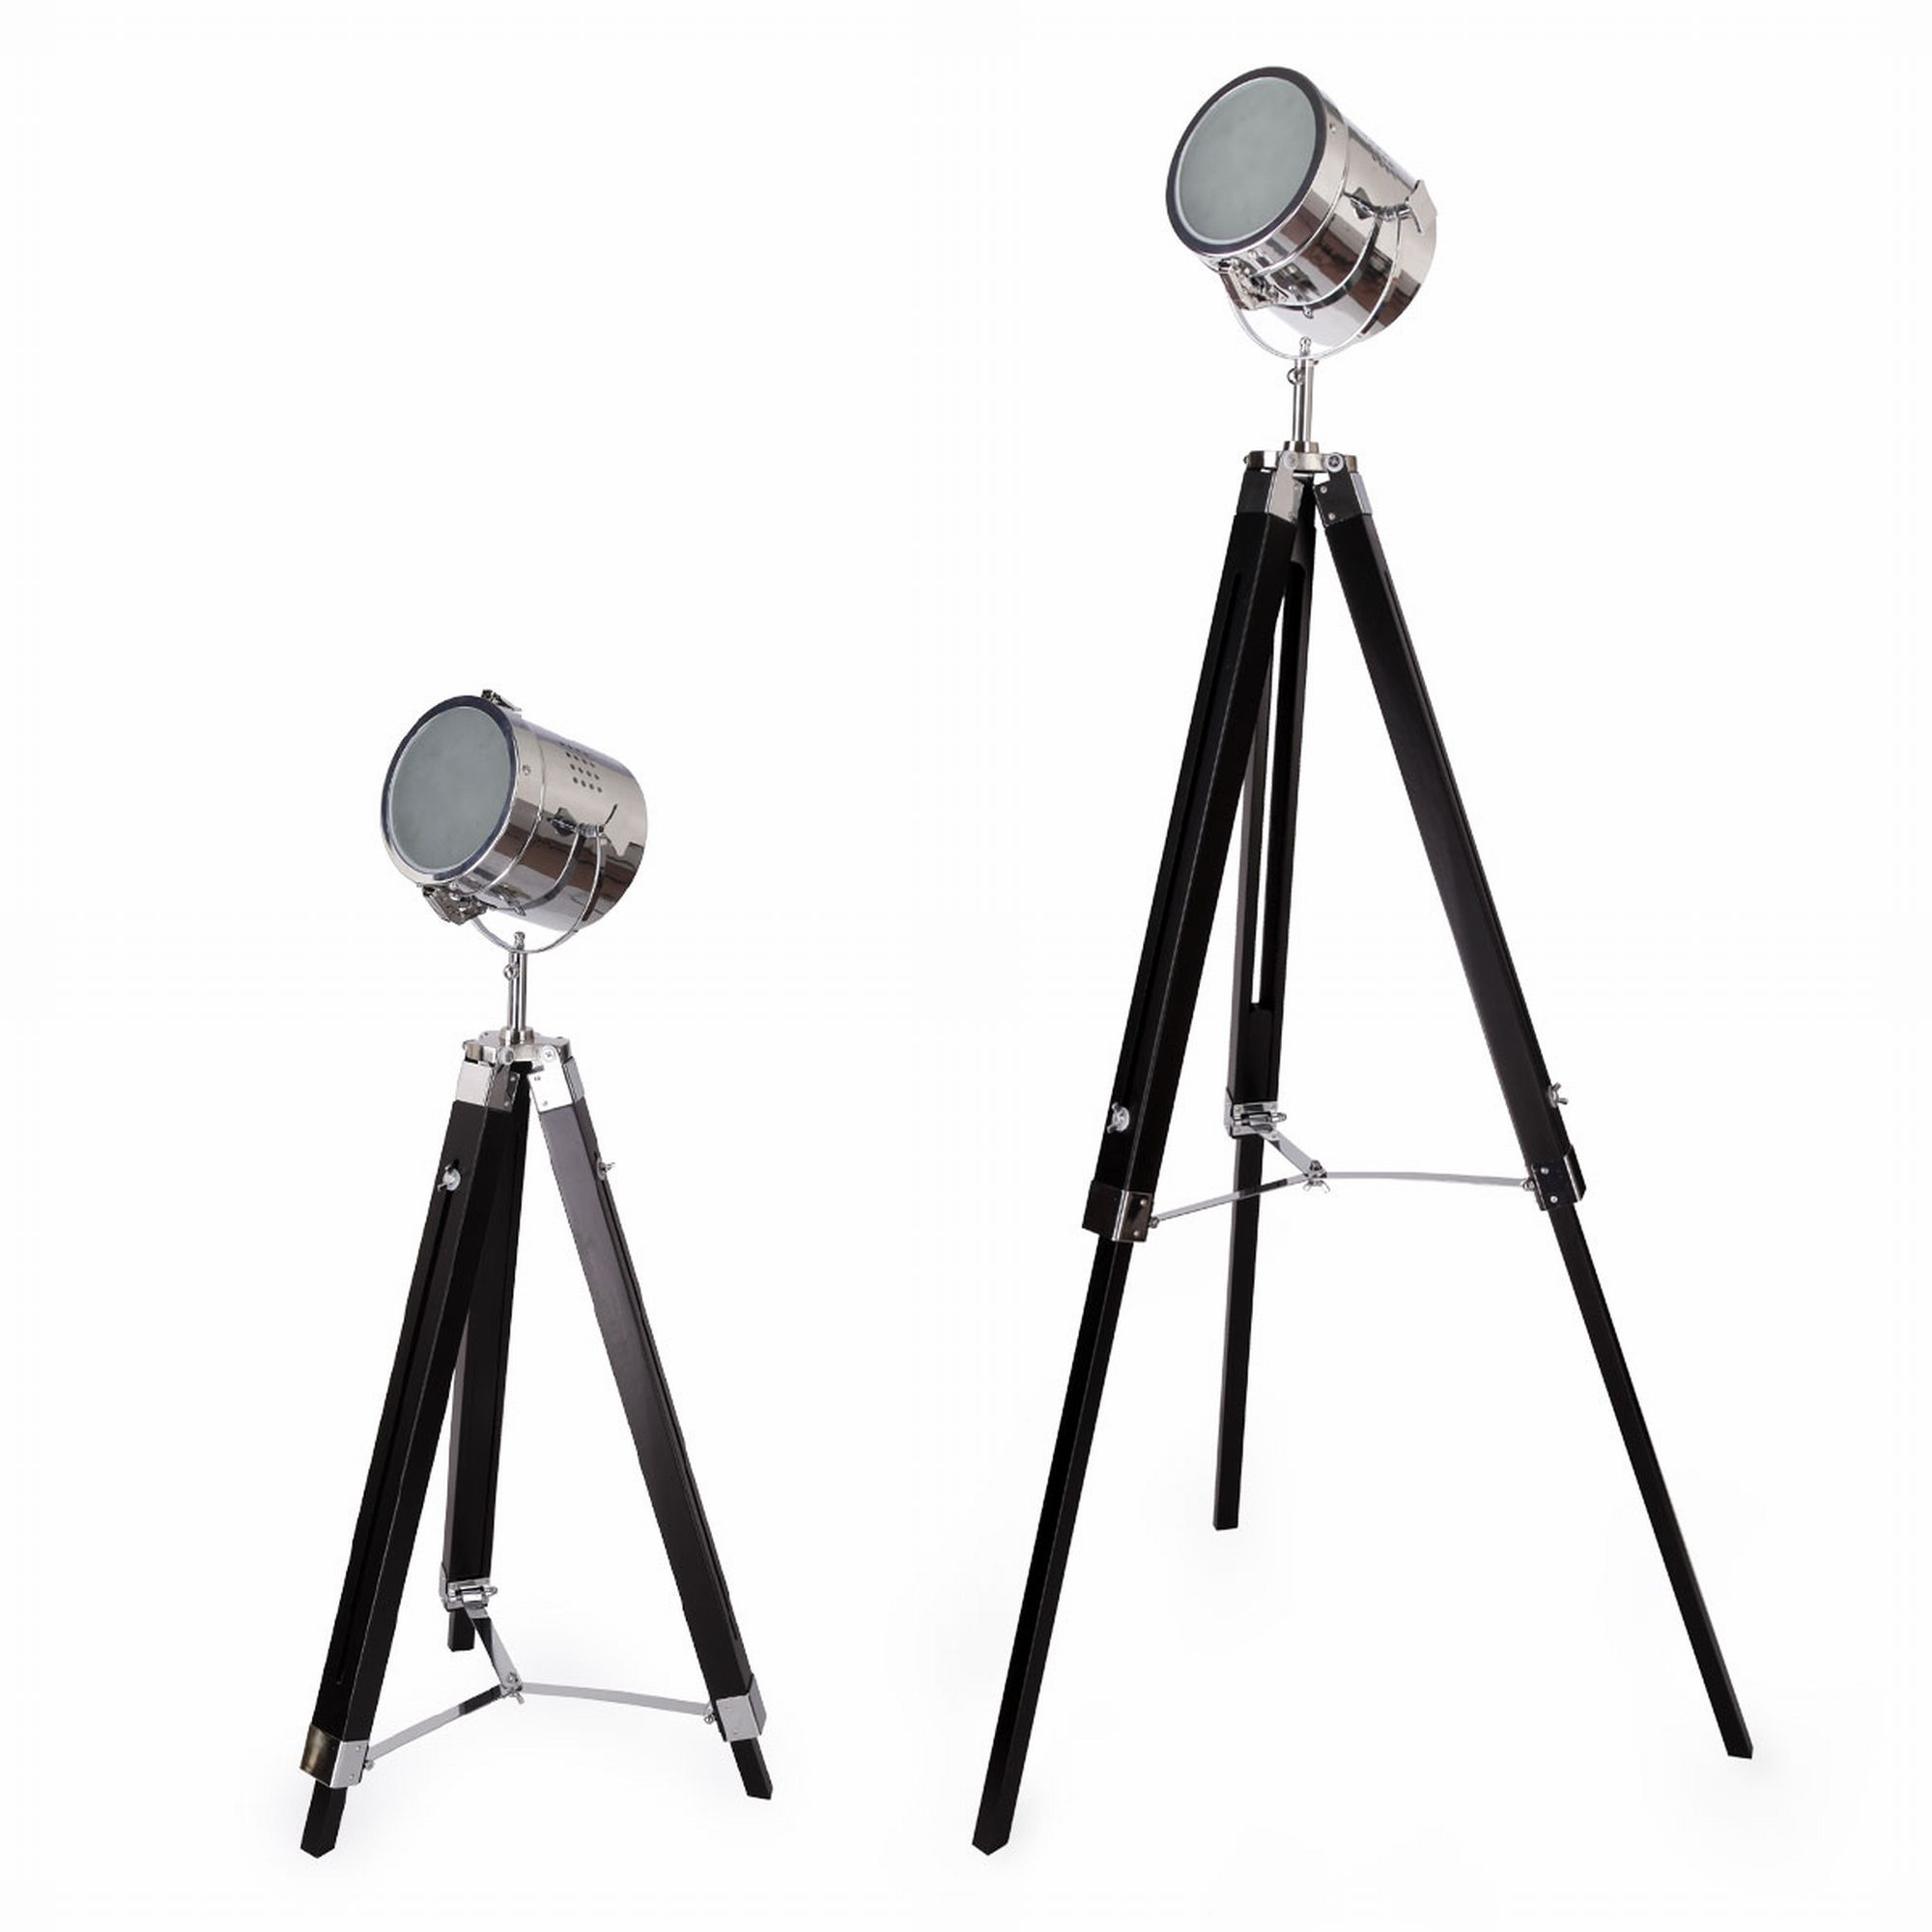 studio stehleuchte stehlampe film scheinwerfer lampe standleuchte leuchte ebay. Black Bedroom Furniture Sets. Home Design Ideas